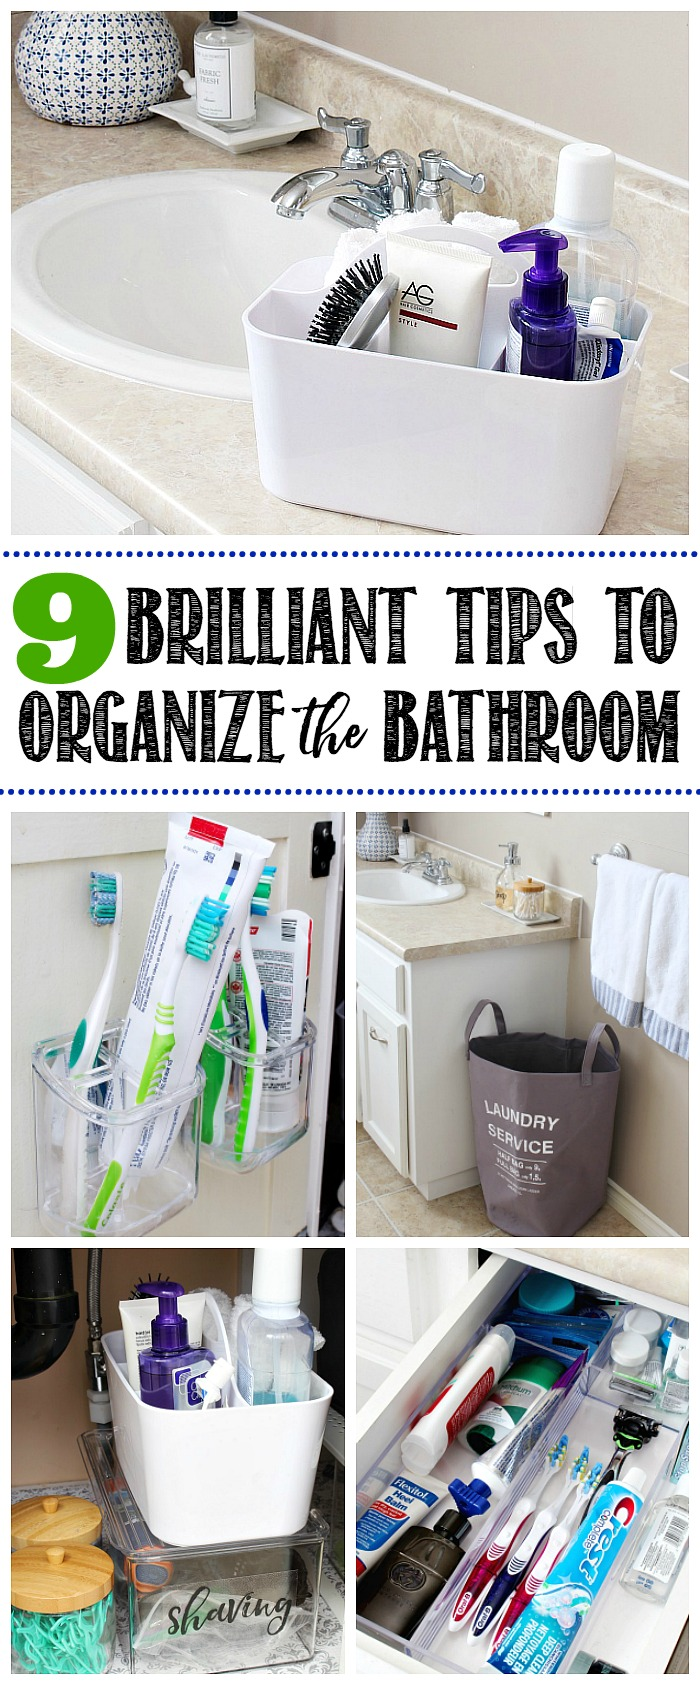 How To Organize A Bathroom 9 Easy Tips To Organize The Bathroom Clean And Scentsible